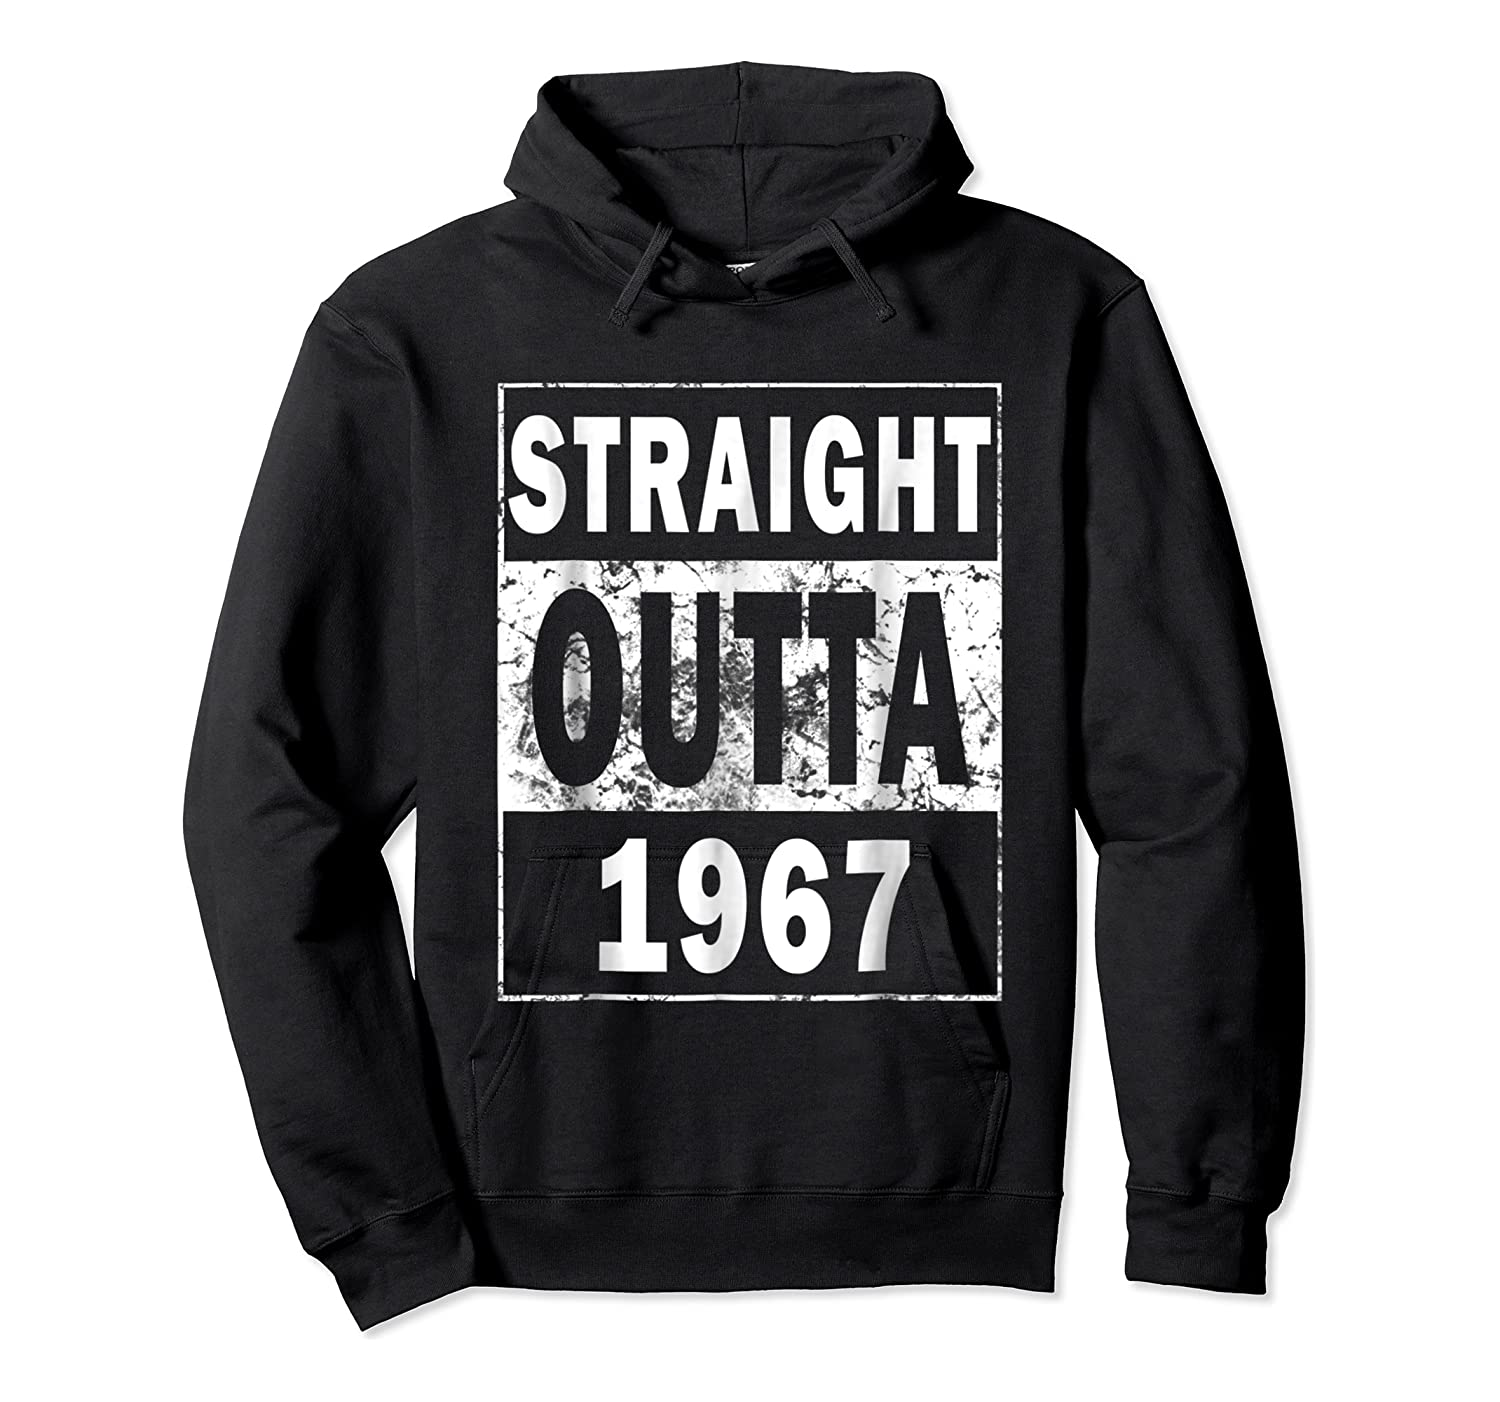 Straight Outta 1967 Funny 50th Birthday Gift Shirts Unisex Pullover Hoodie